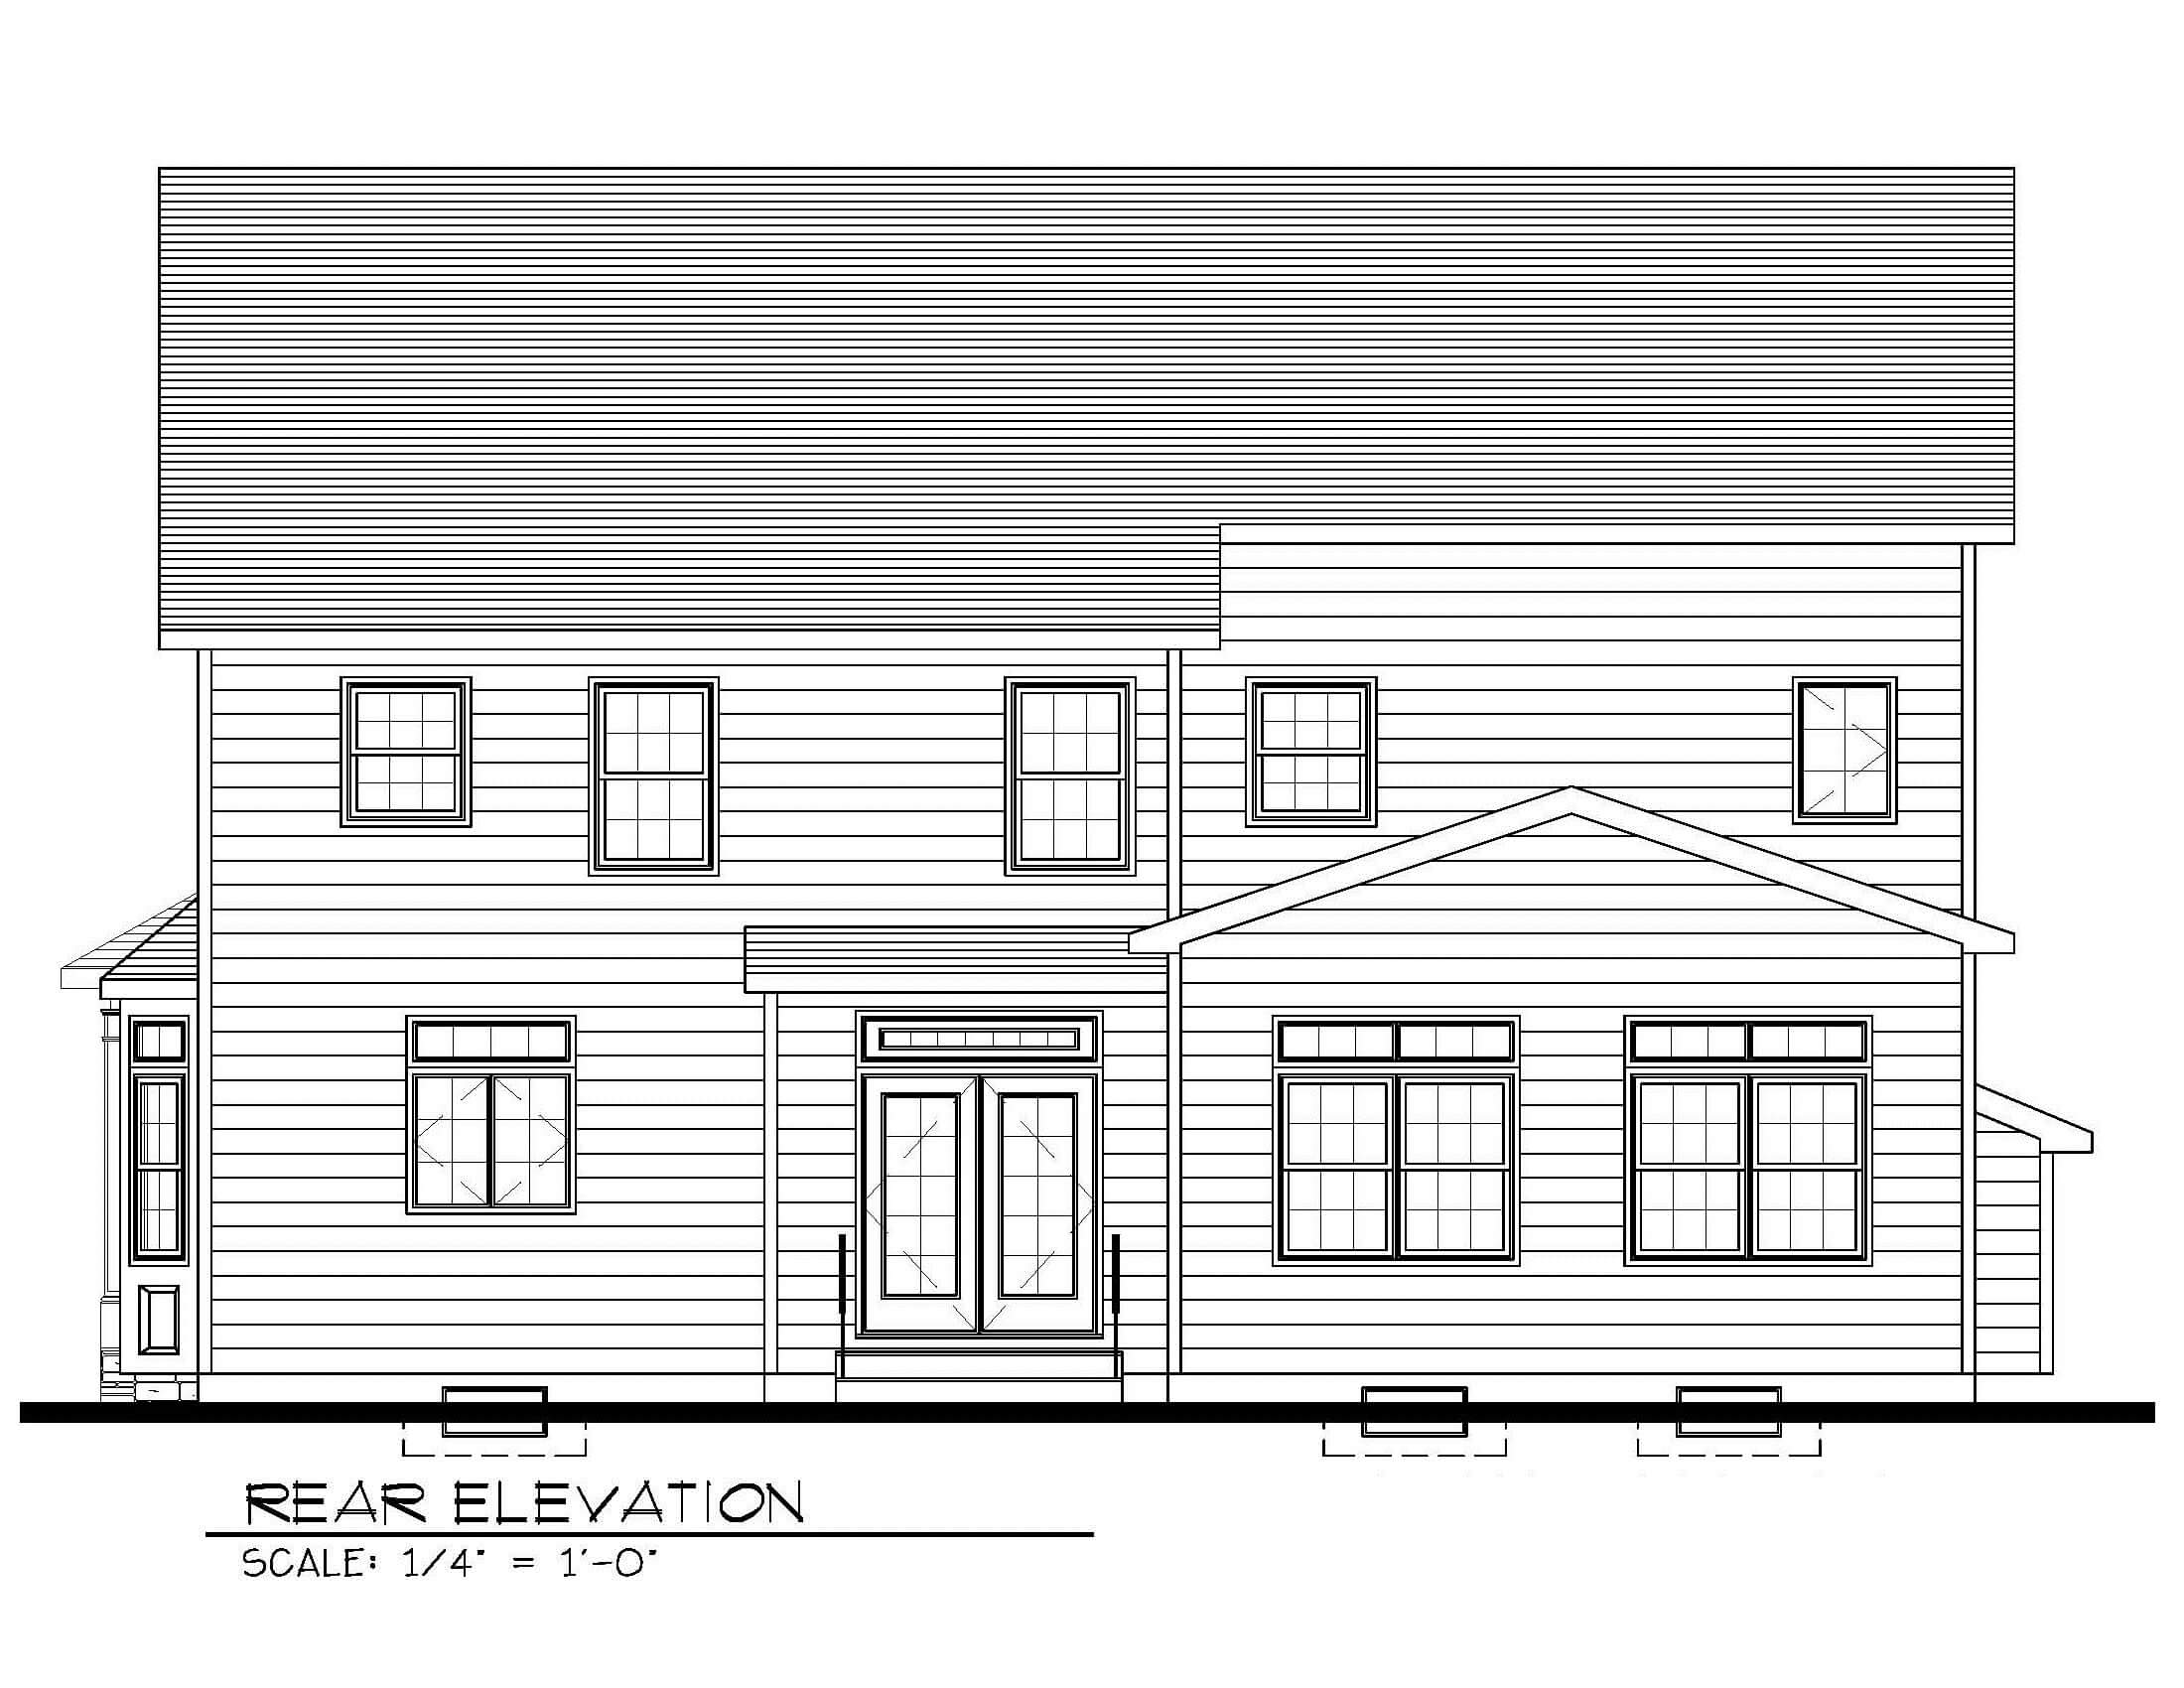 129 Brightwood Rear Elevation B&W